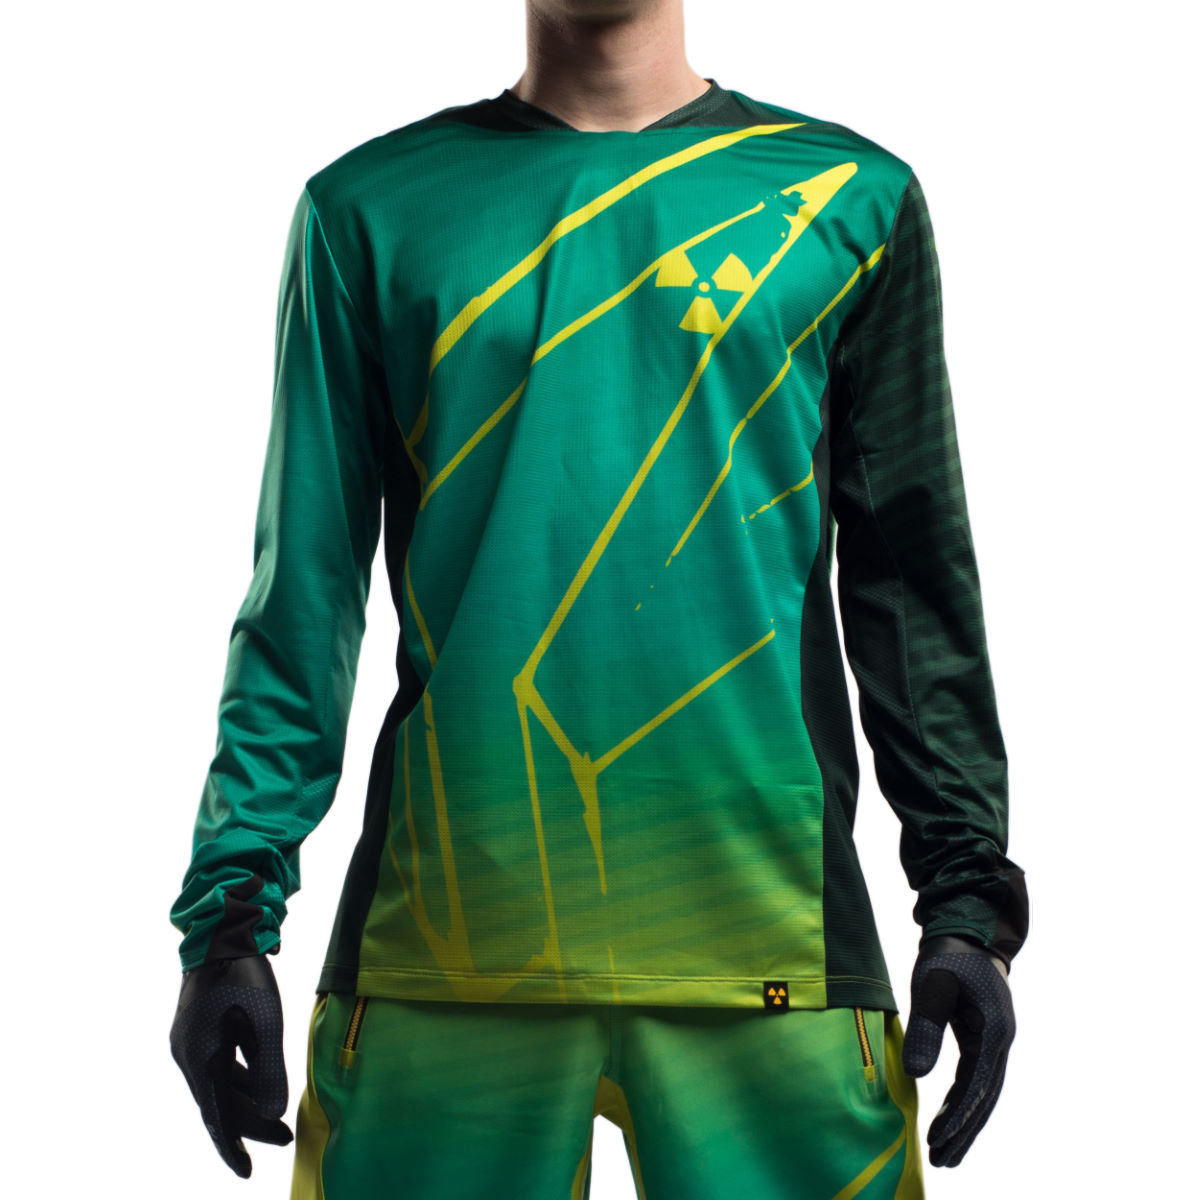 Maillot Nukeproof Kashmir Nsketch (manches longues) - Extra Large